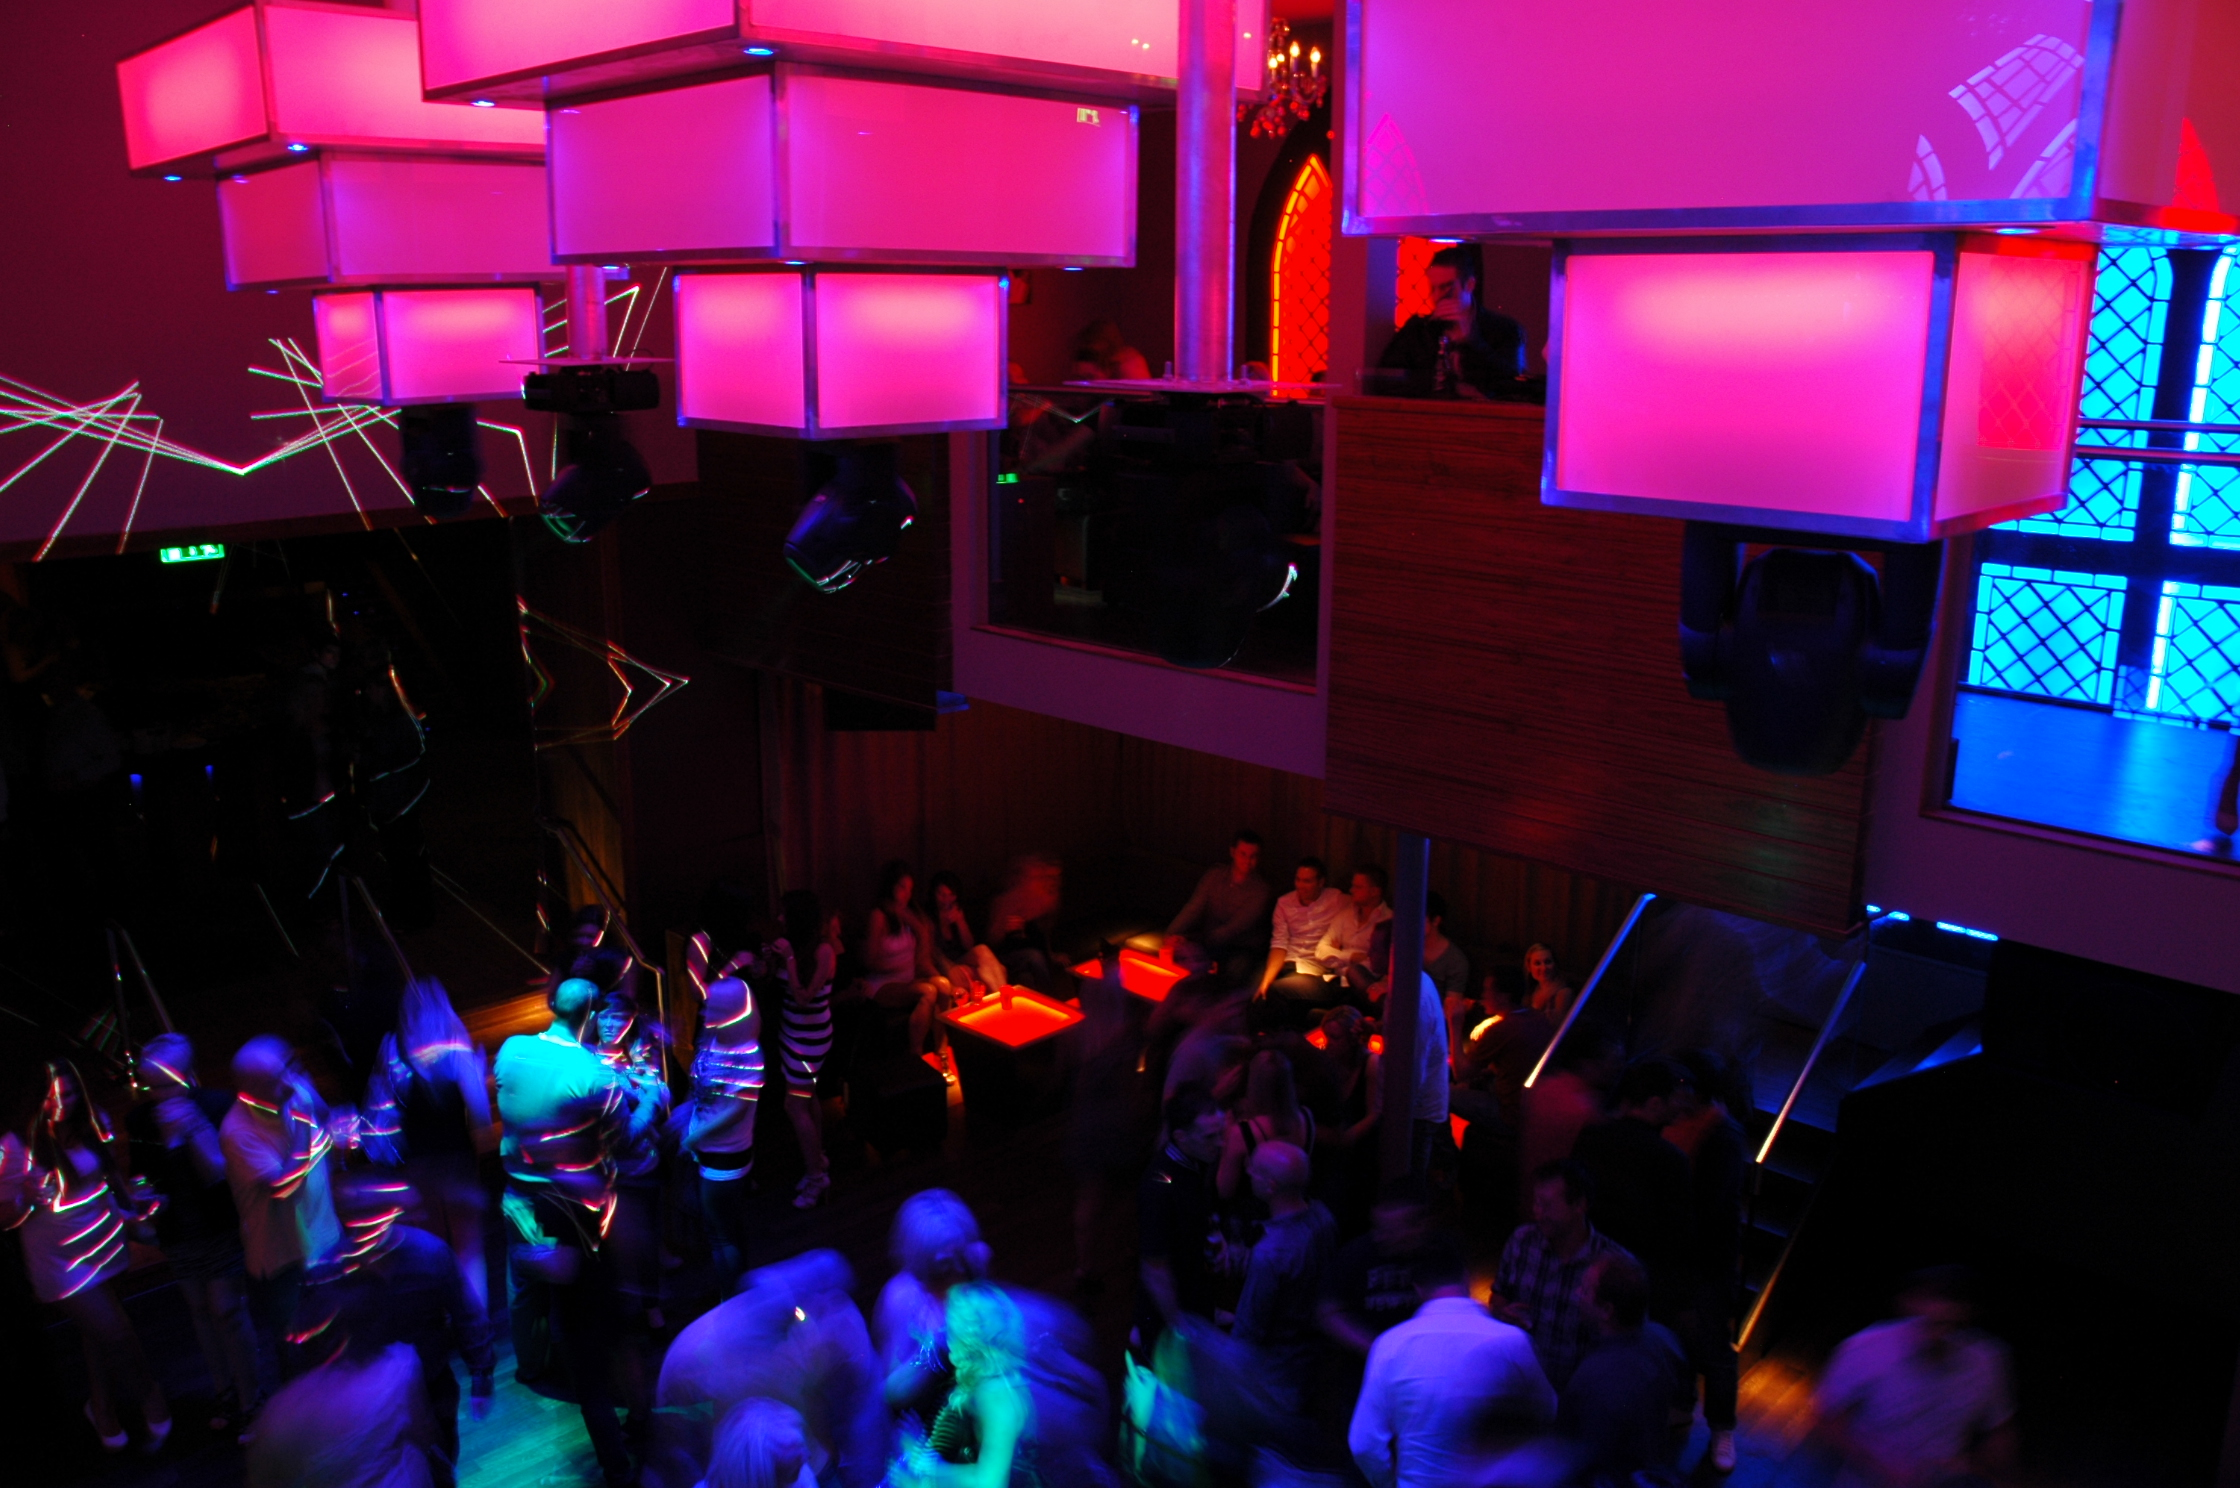 Loft Perth Loft Nightclub Perth Andrew Black Design Architecture